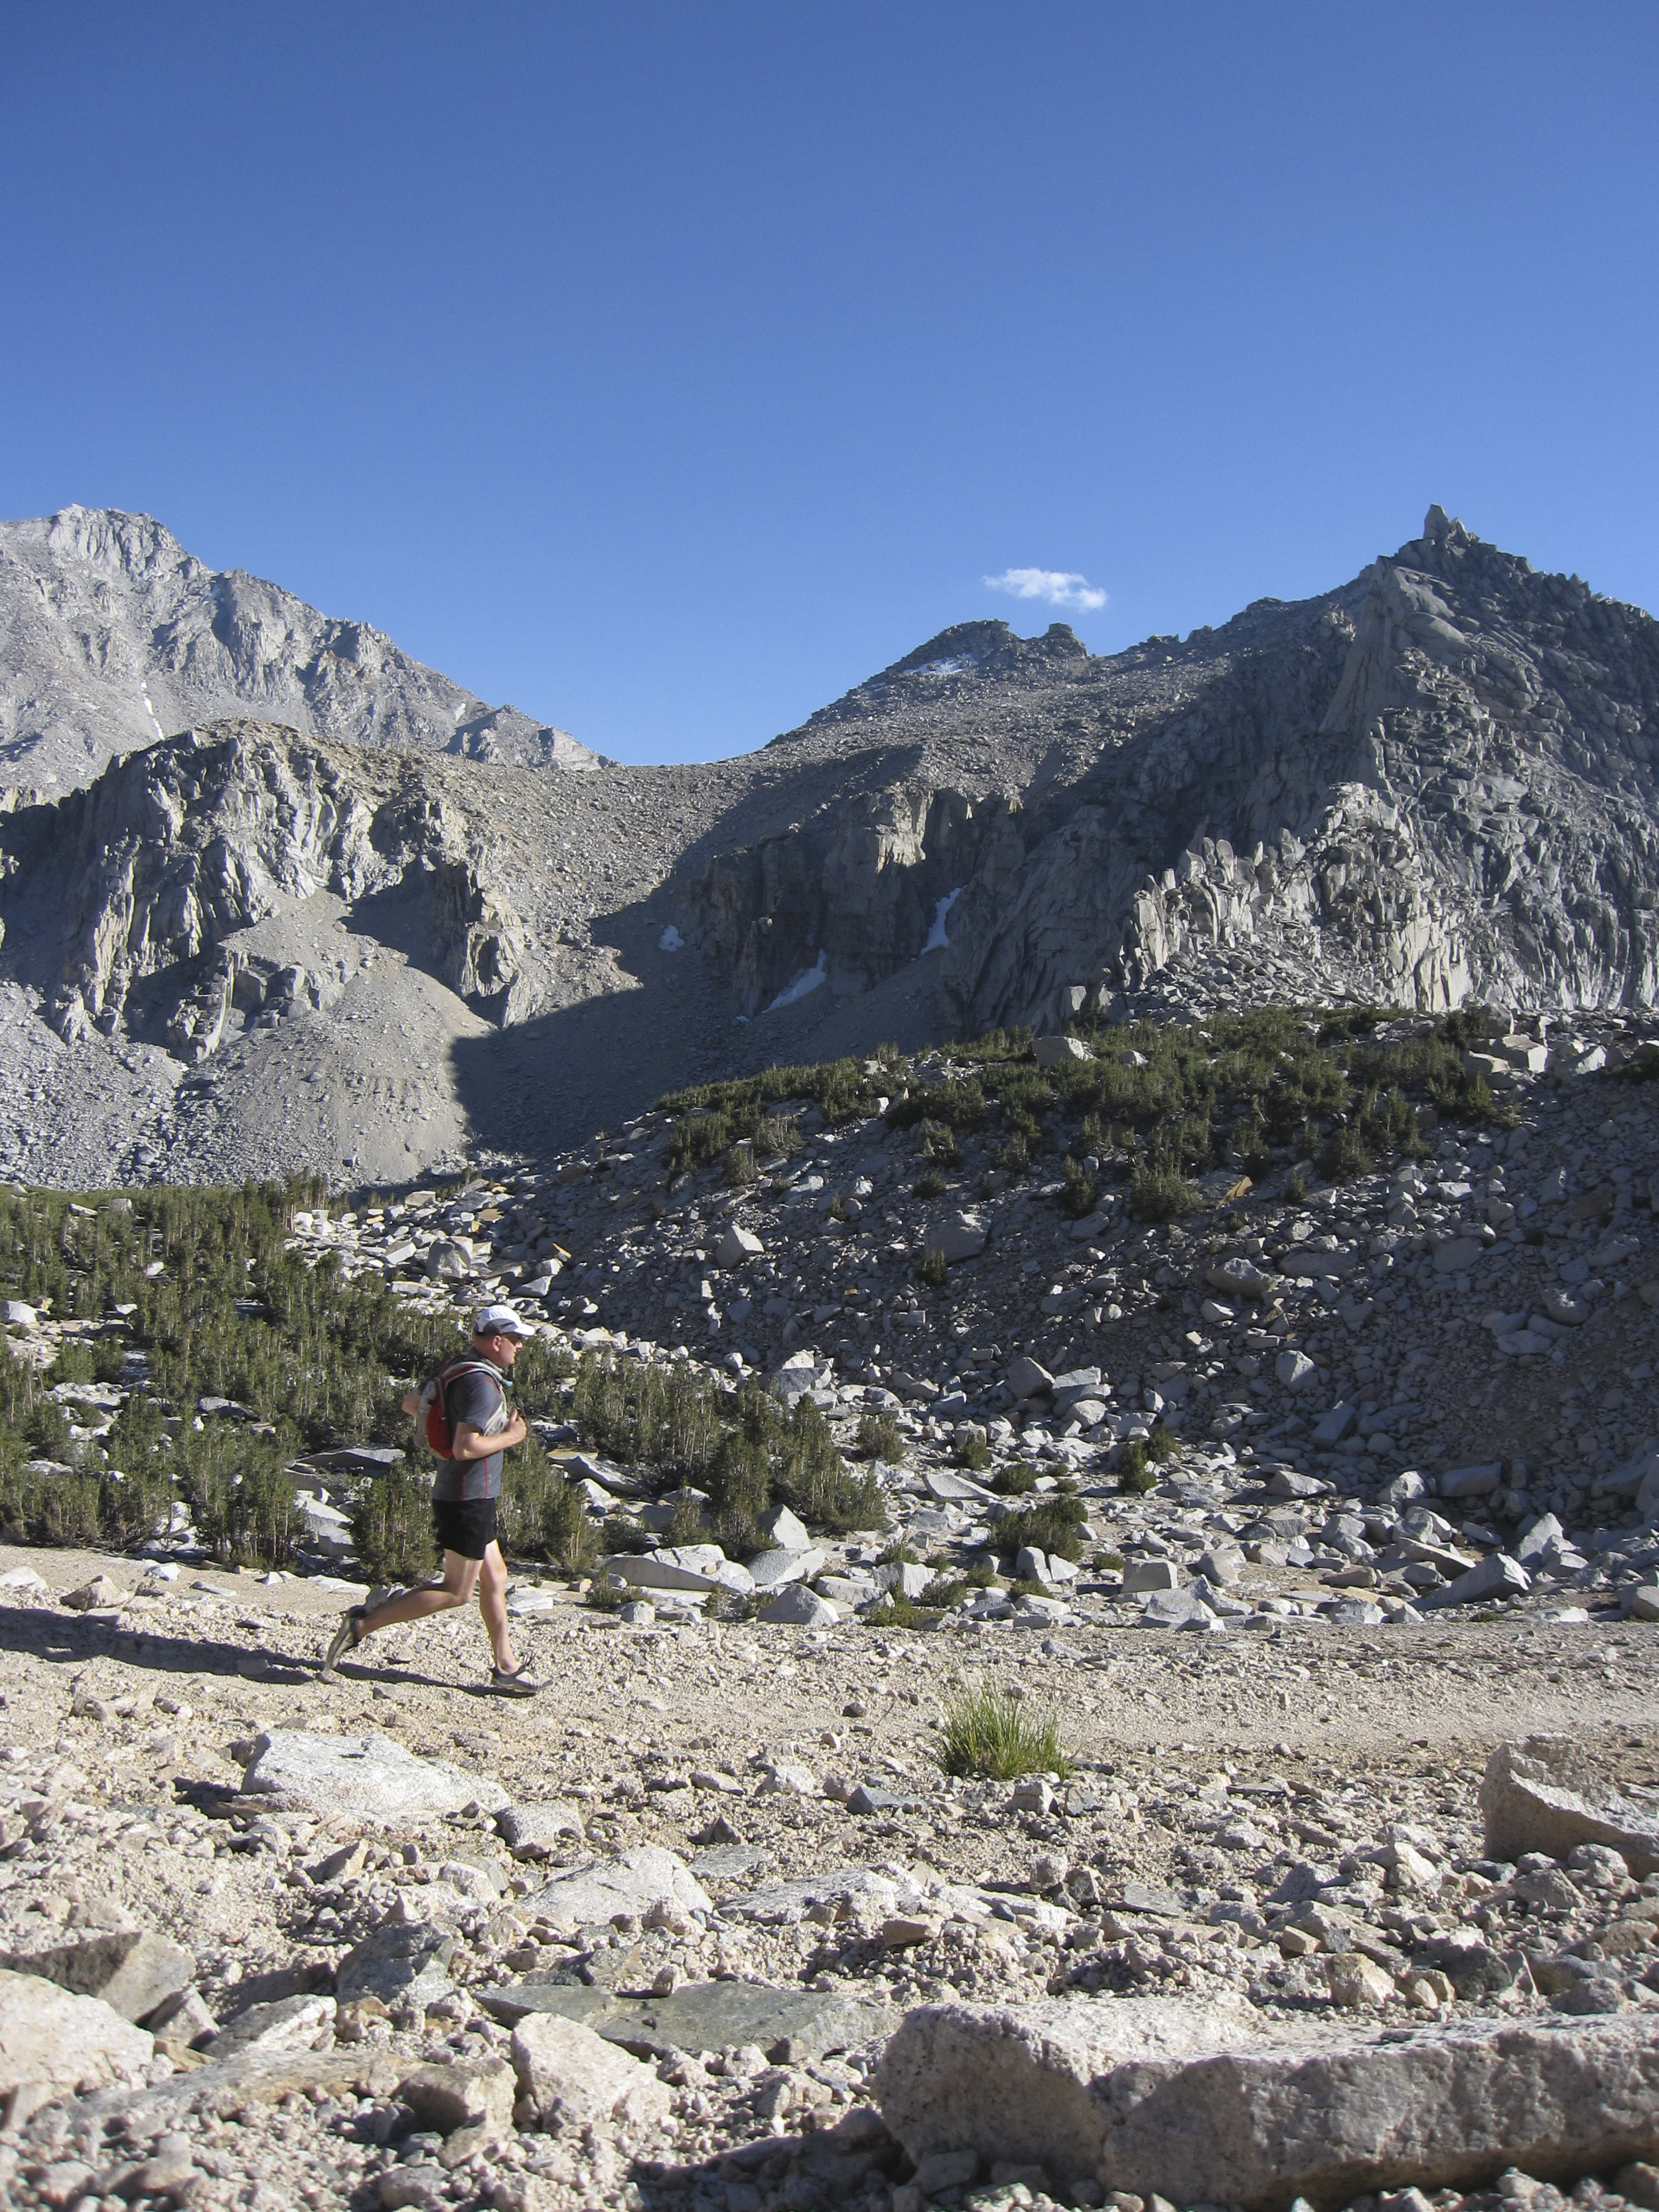 Clynton, my brother, returning from Kearsarge Pass.